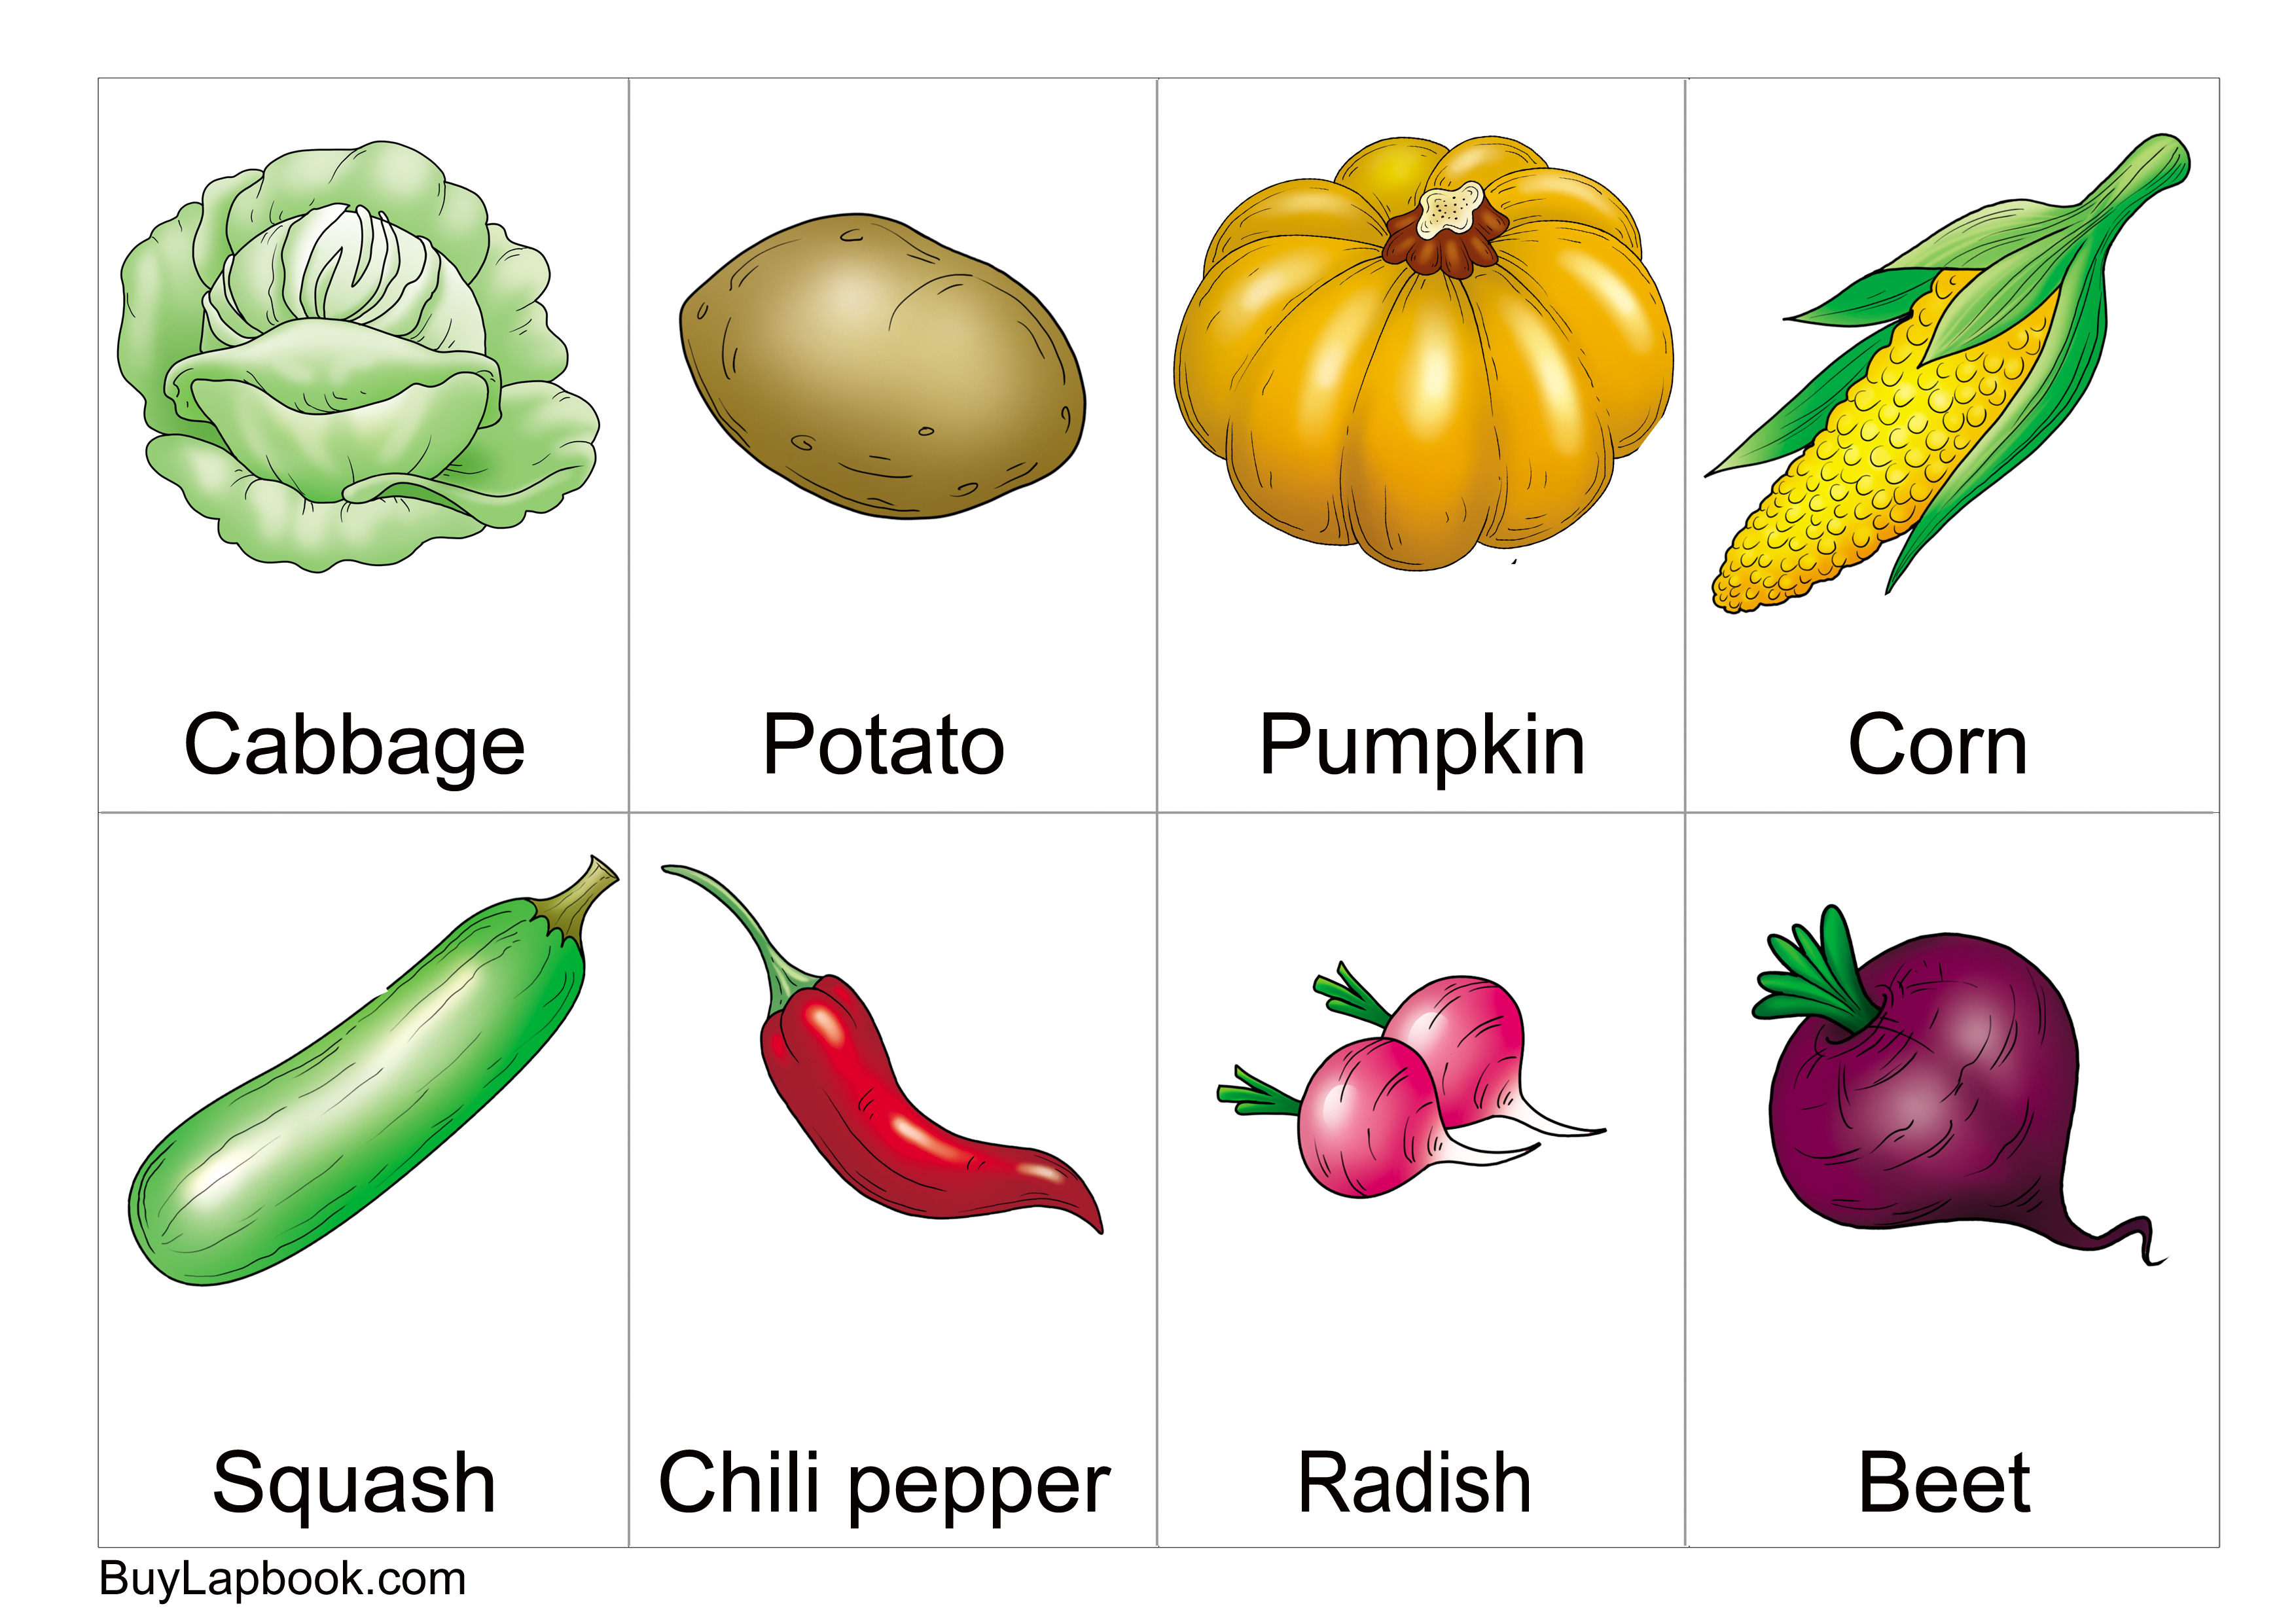 Free Printable Vegetables Flashcards With Names For